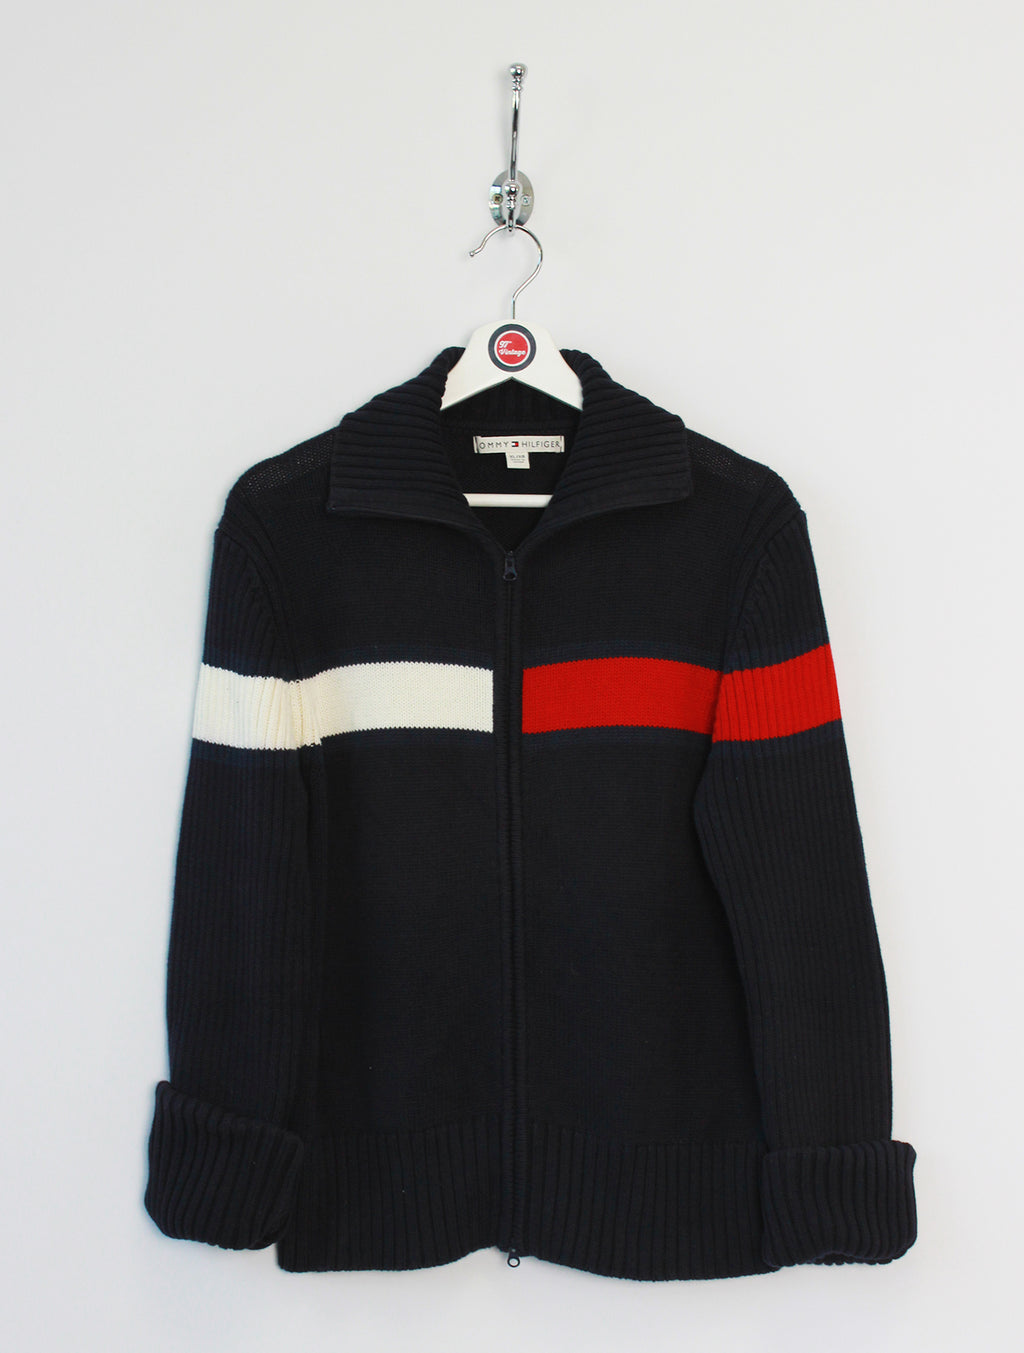 Tommy Hilfiger Zip Up Jumper (XL)